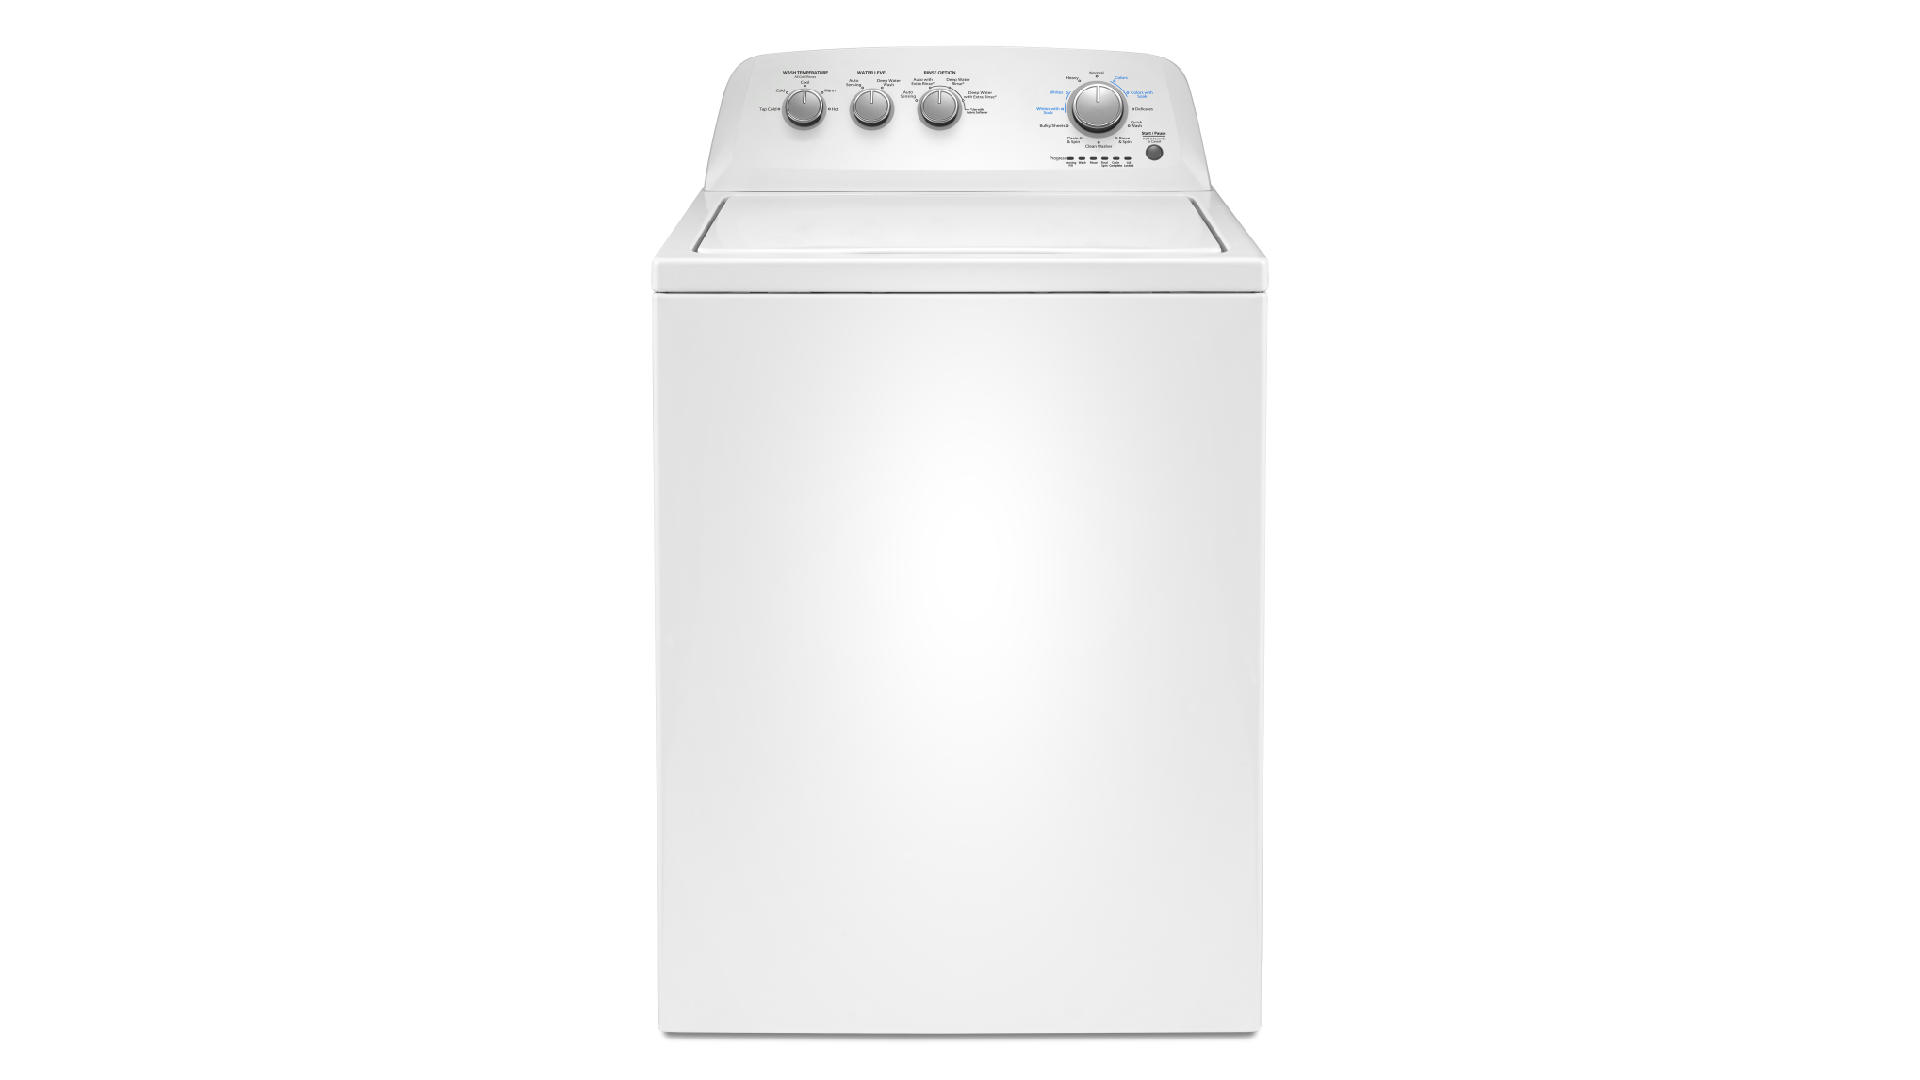 """Featured image for """"Whirlpool Washer Displaying Error Code F21? Here's Why"""""""